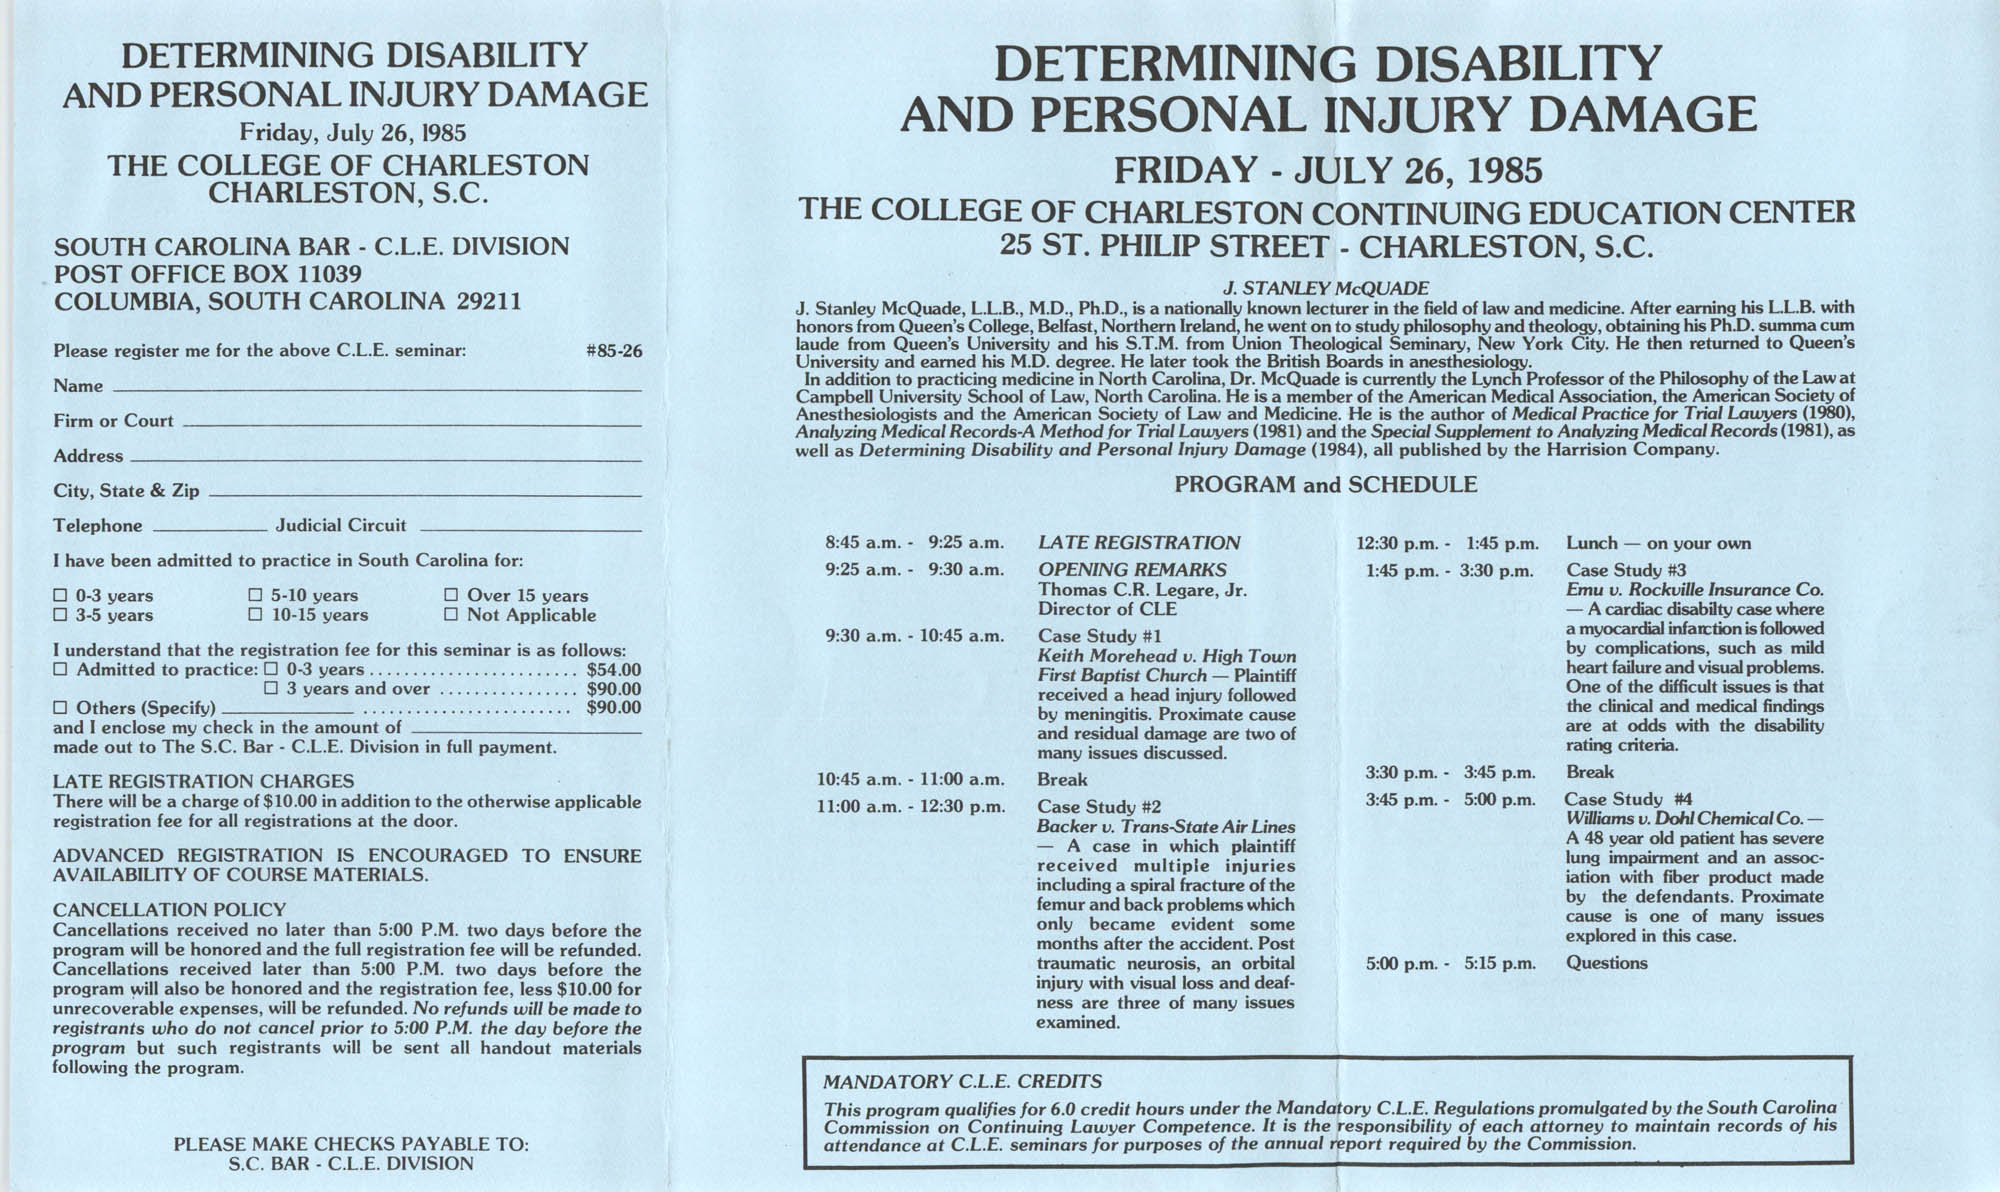 Determining Disability and Personal Injury Damage, Continuing Judicial Education Seminar, July 26, 1985